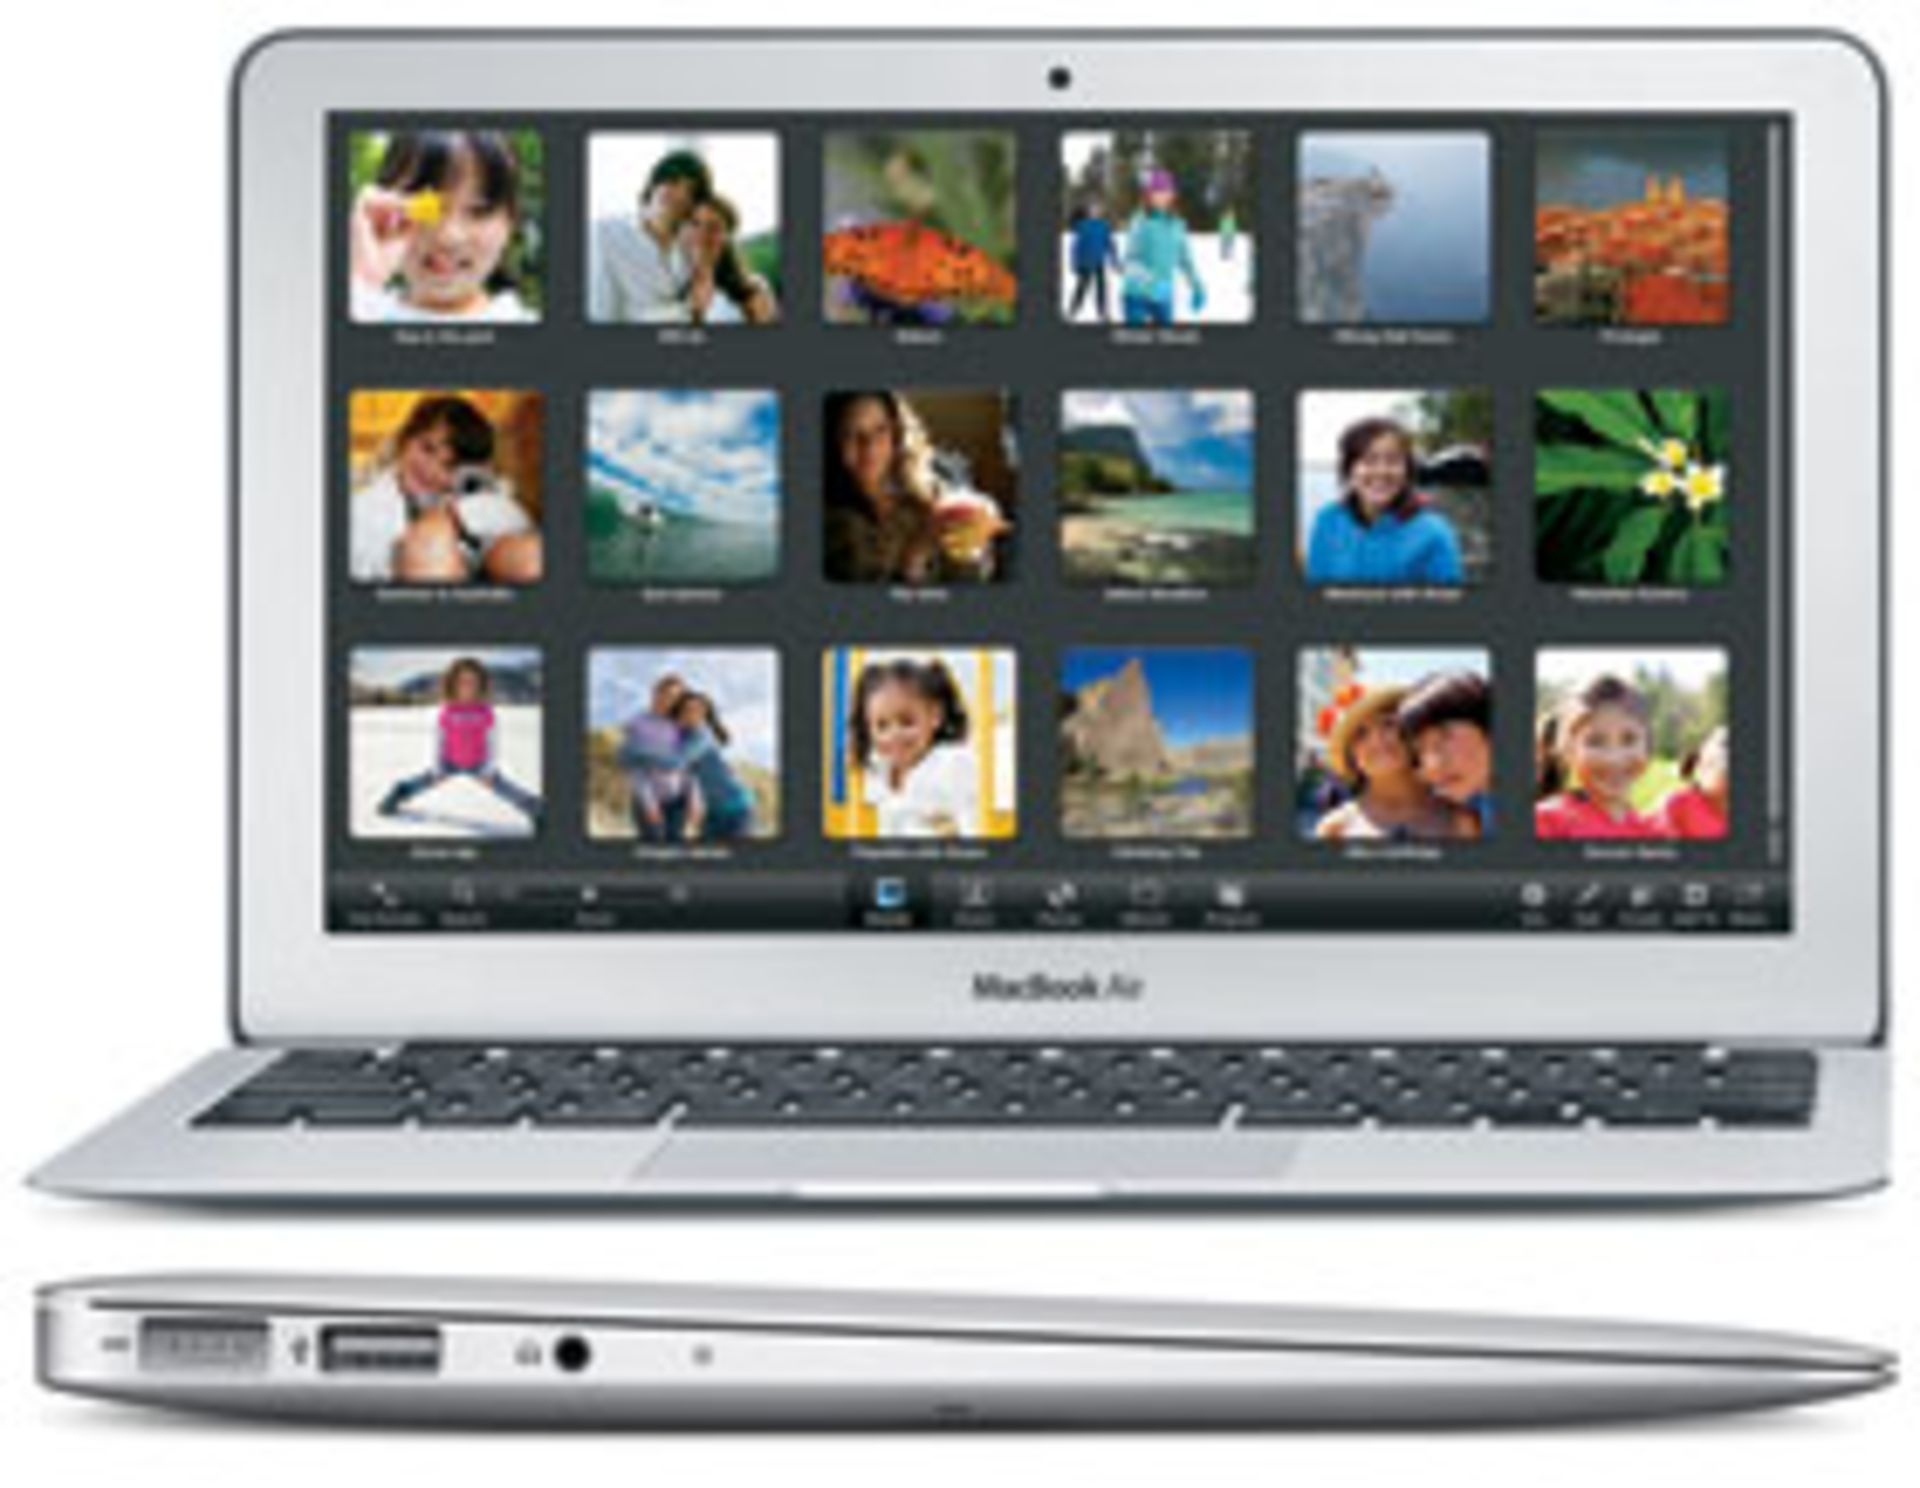 Lot 60027 - V Grade B Macbook Air 11.6 Inch Core 2 Duo - 64GB SSD - A1370 - Available Approx 7 Working Days